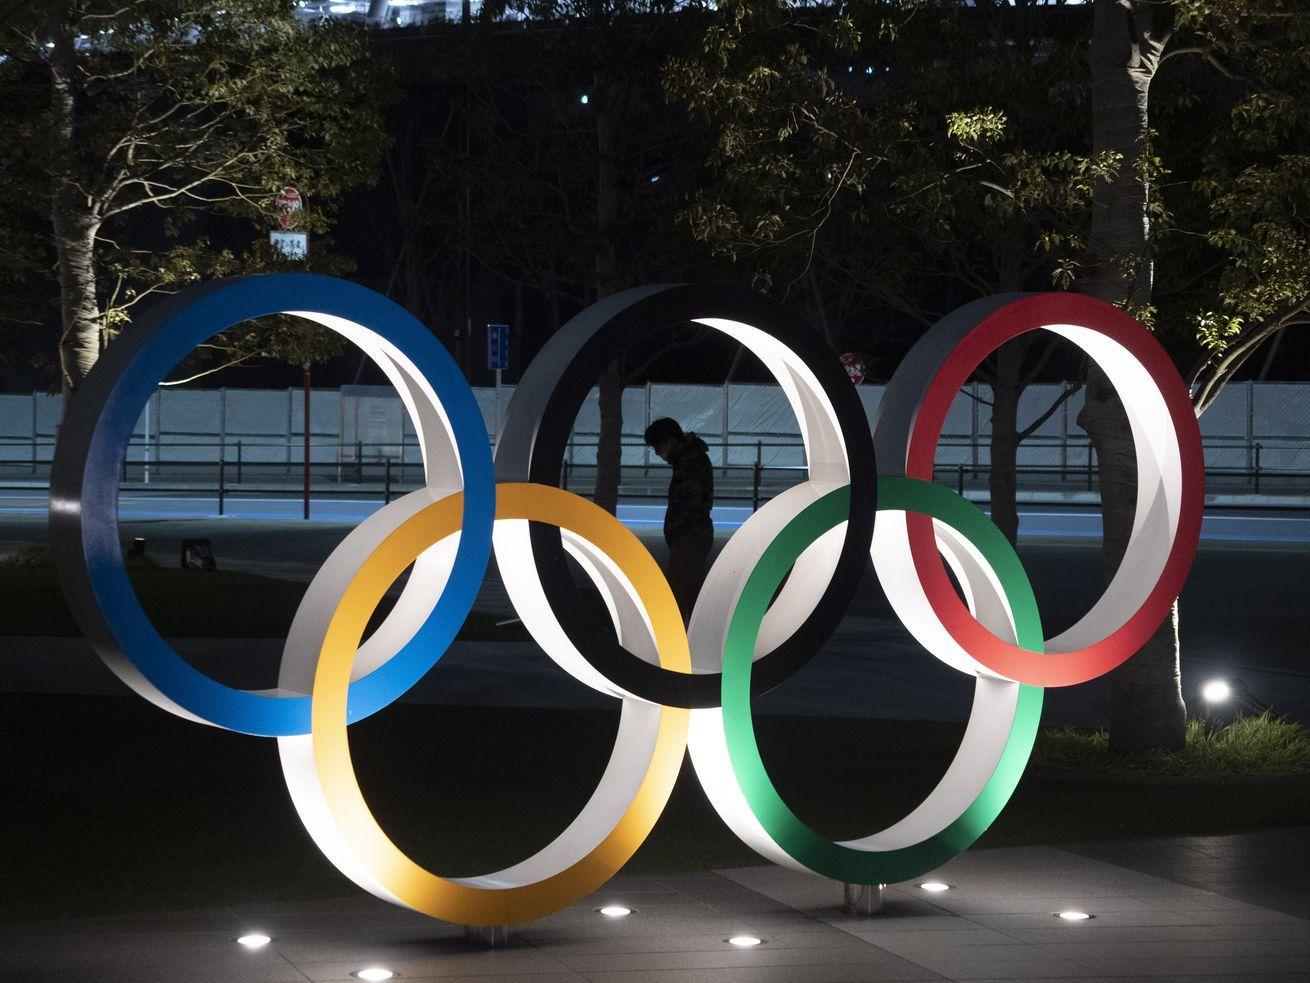 Tokyo Olympics will officially be postponed to 2021, and